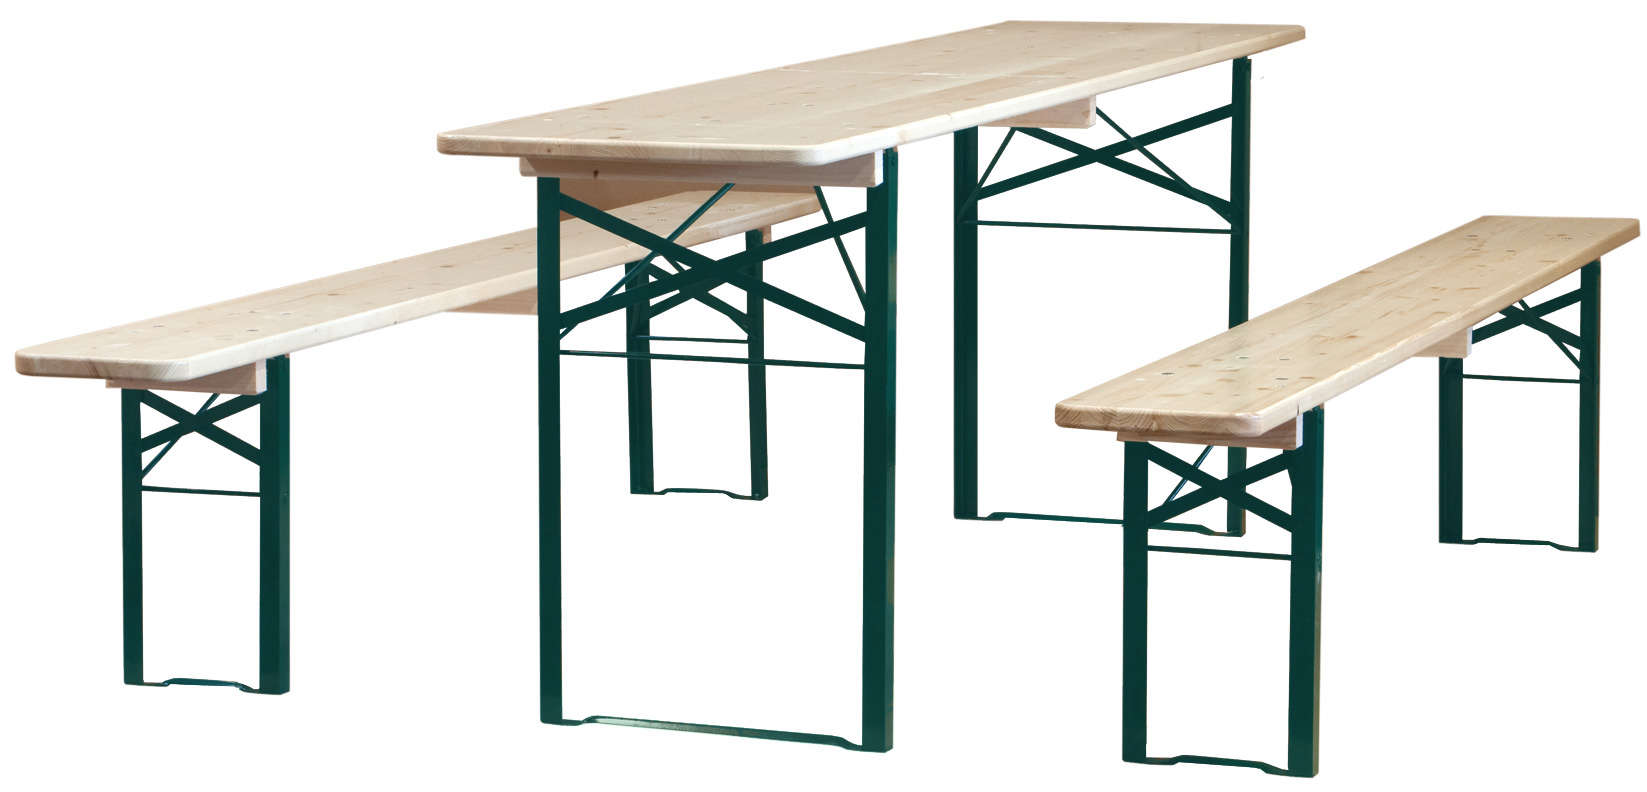 Biergarten Folding Wood Table and Bench Sets Remodelista